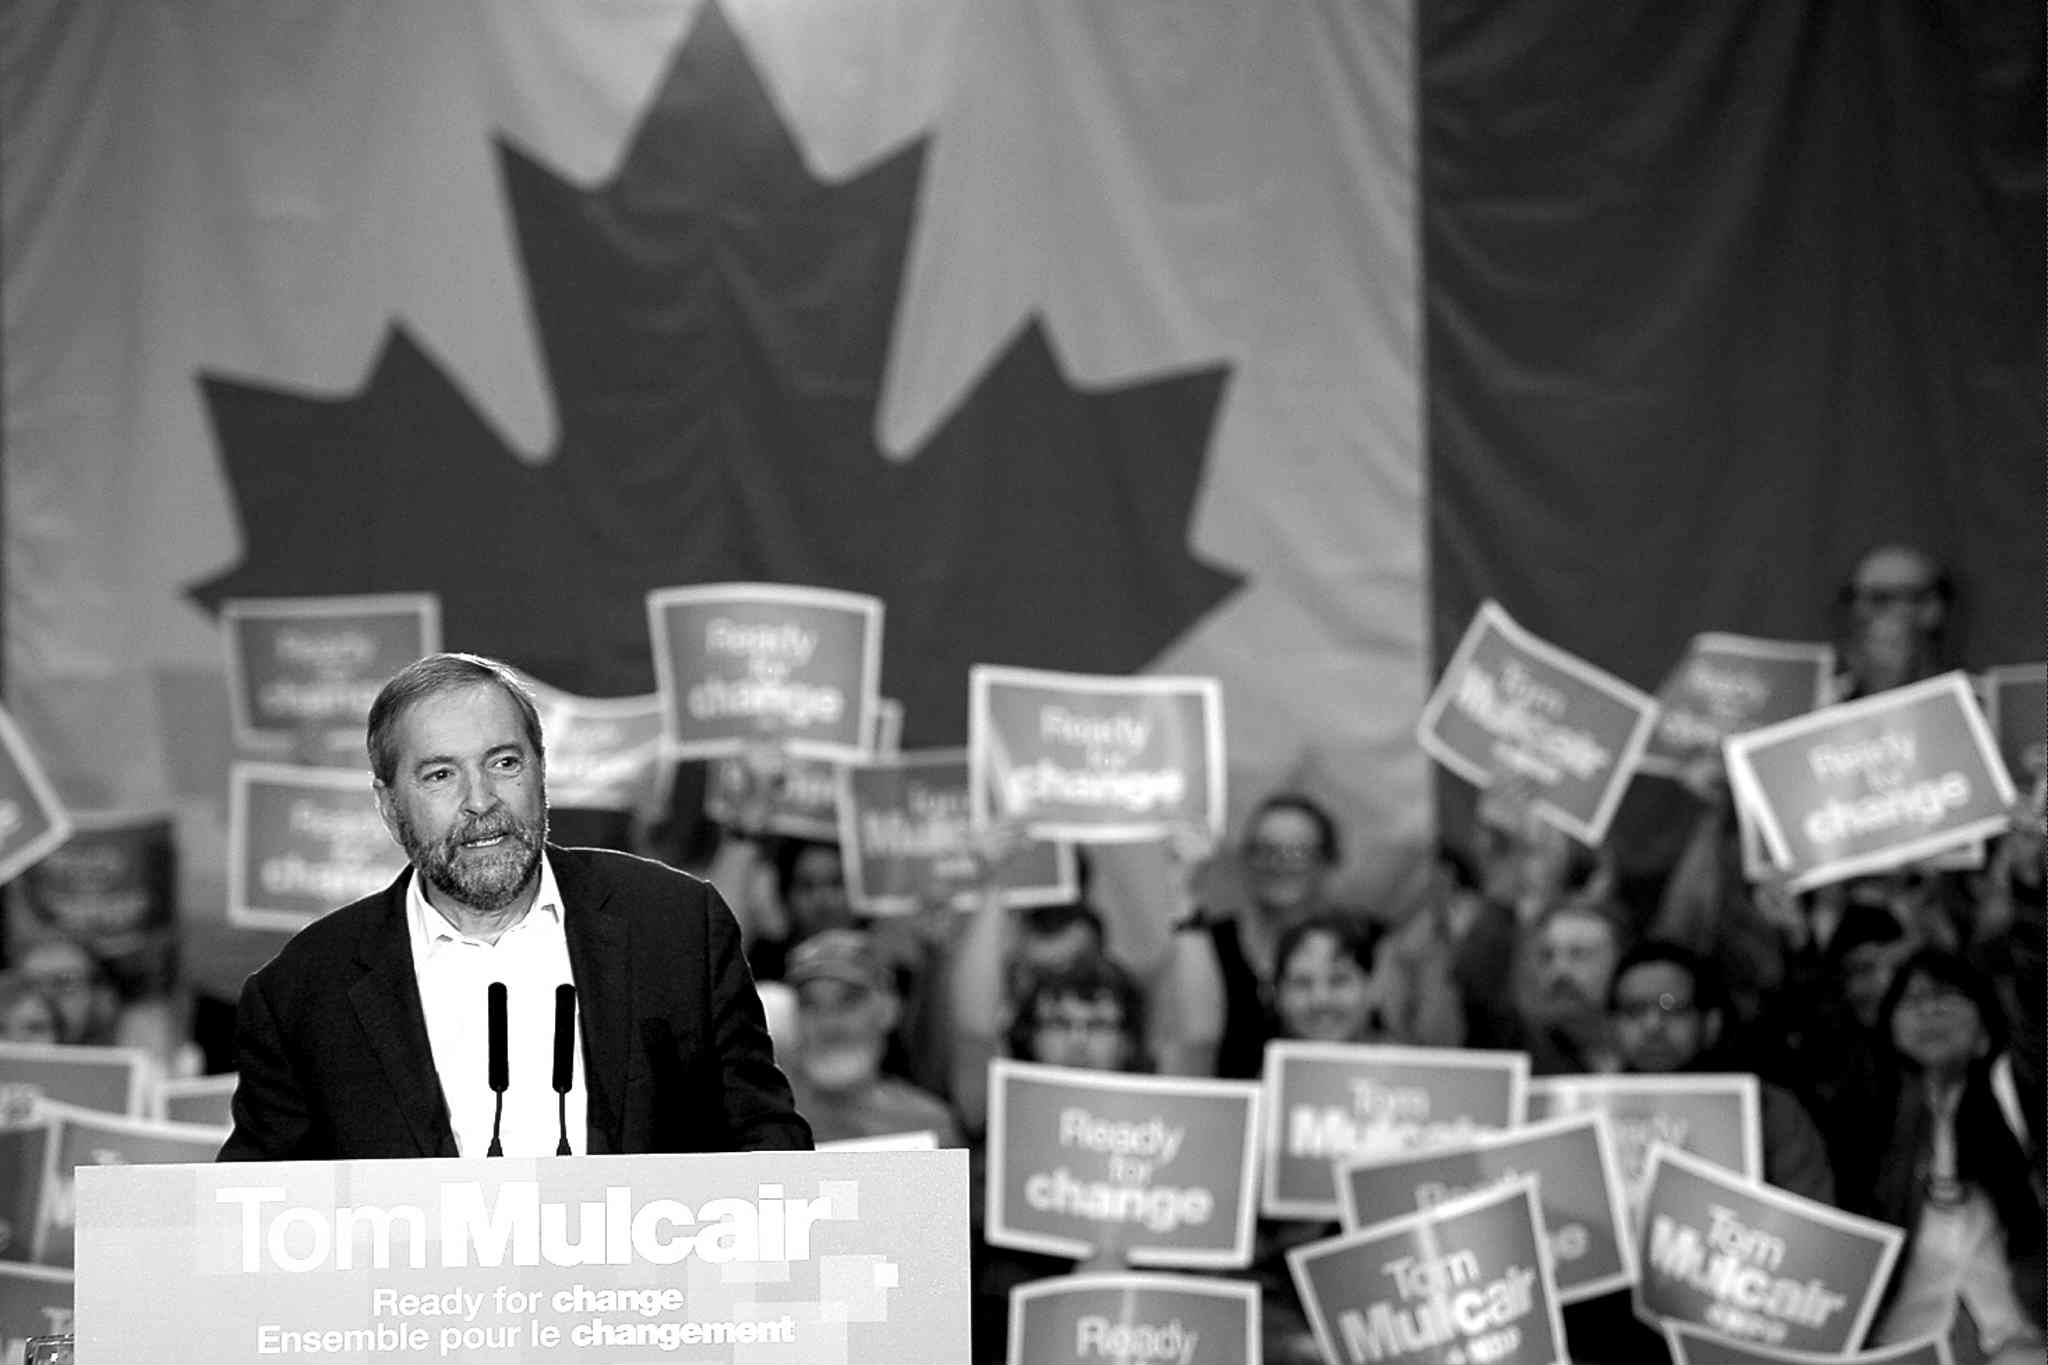 NDP Leader Tom Mulcair speaks to supporters at a campaign rally in Penticton, B.C